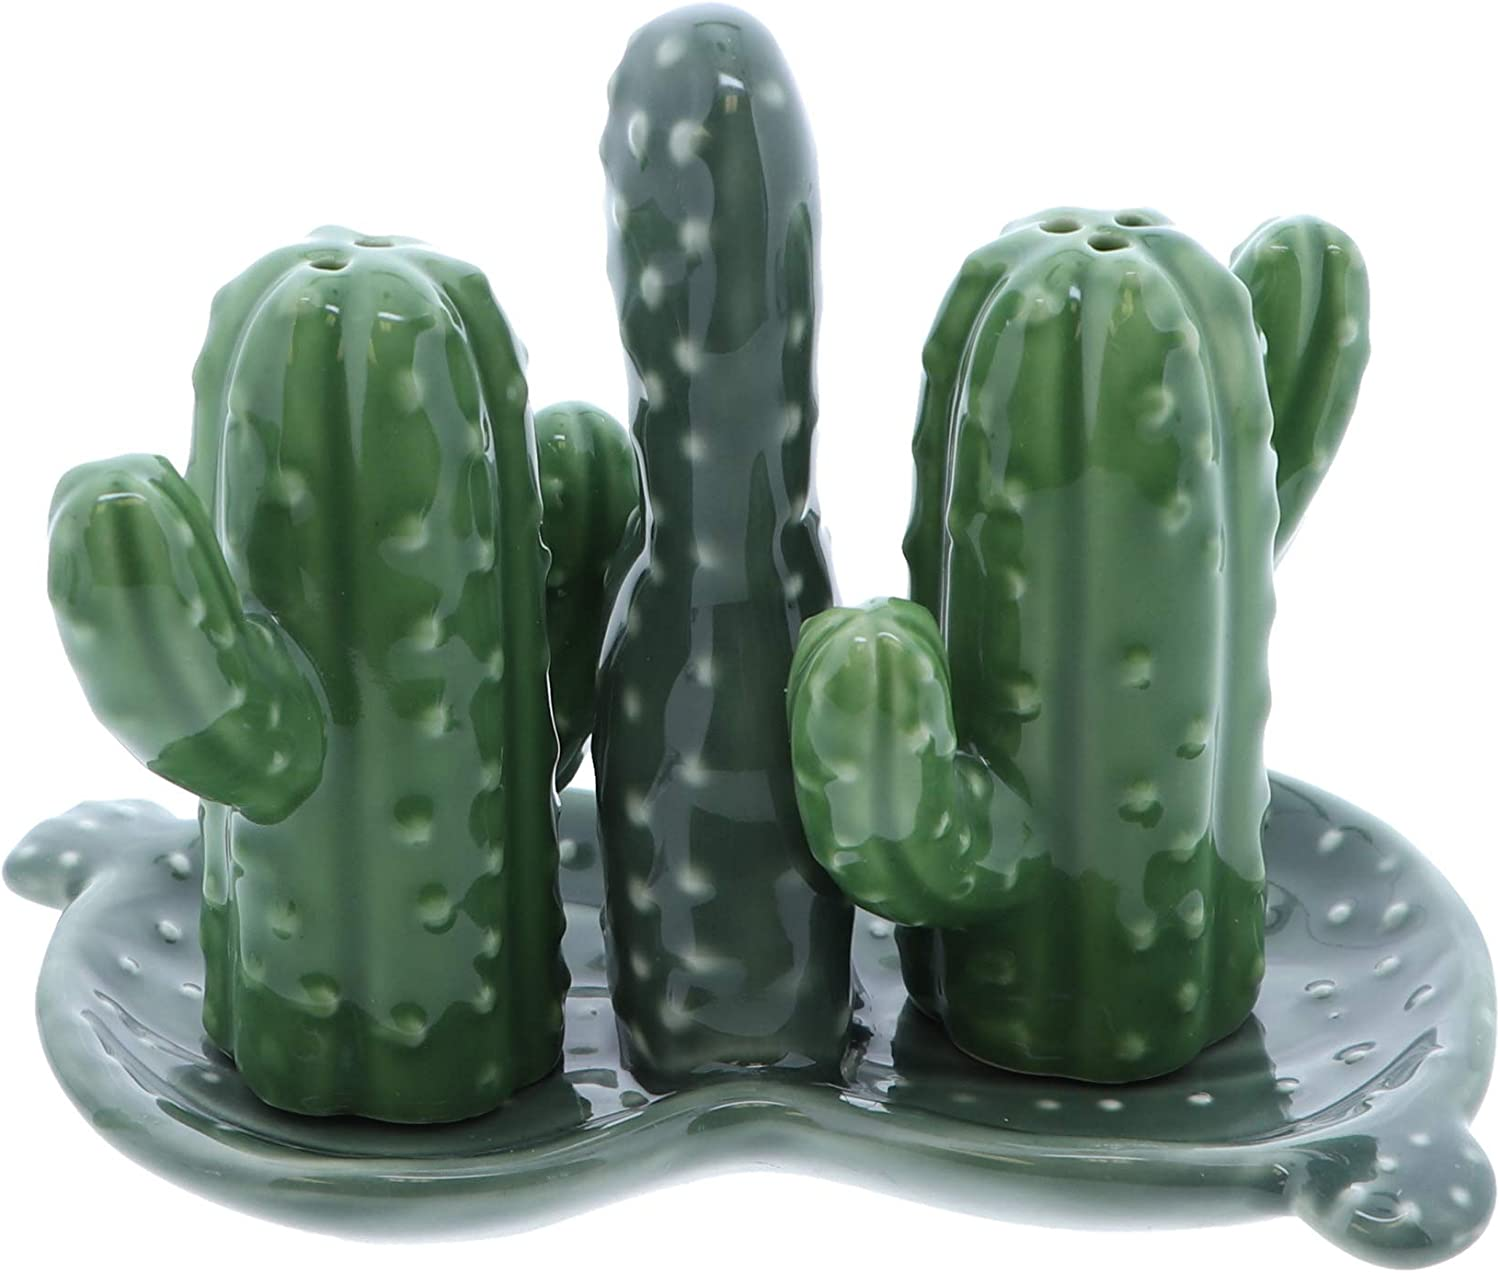 Ceramic Salt & Pepper Shakers Collectors Kitchen Décor with Tray - Cactus